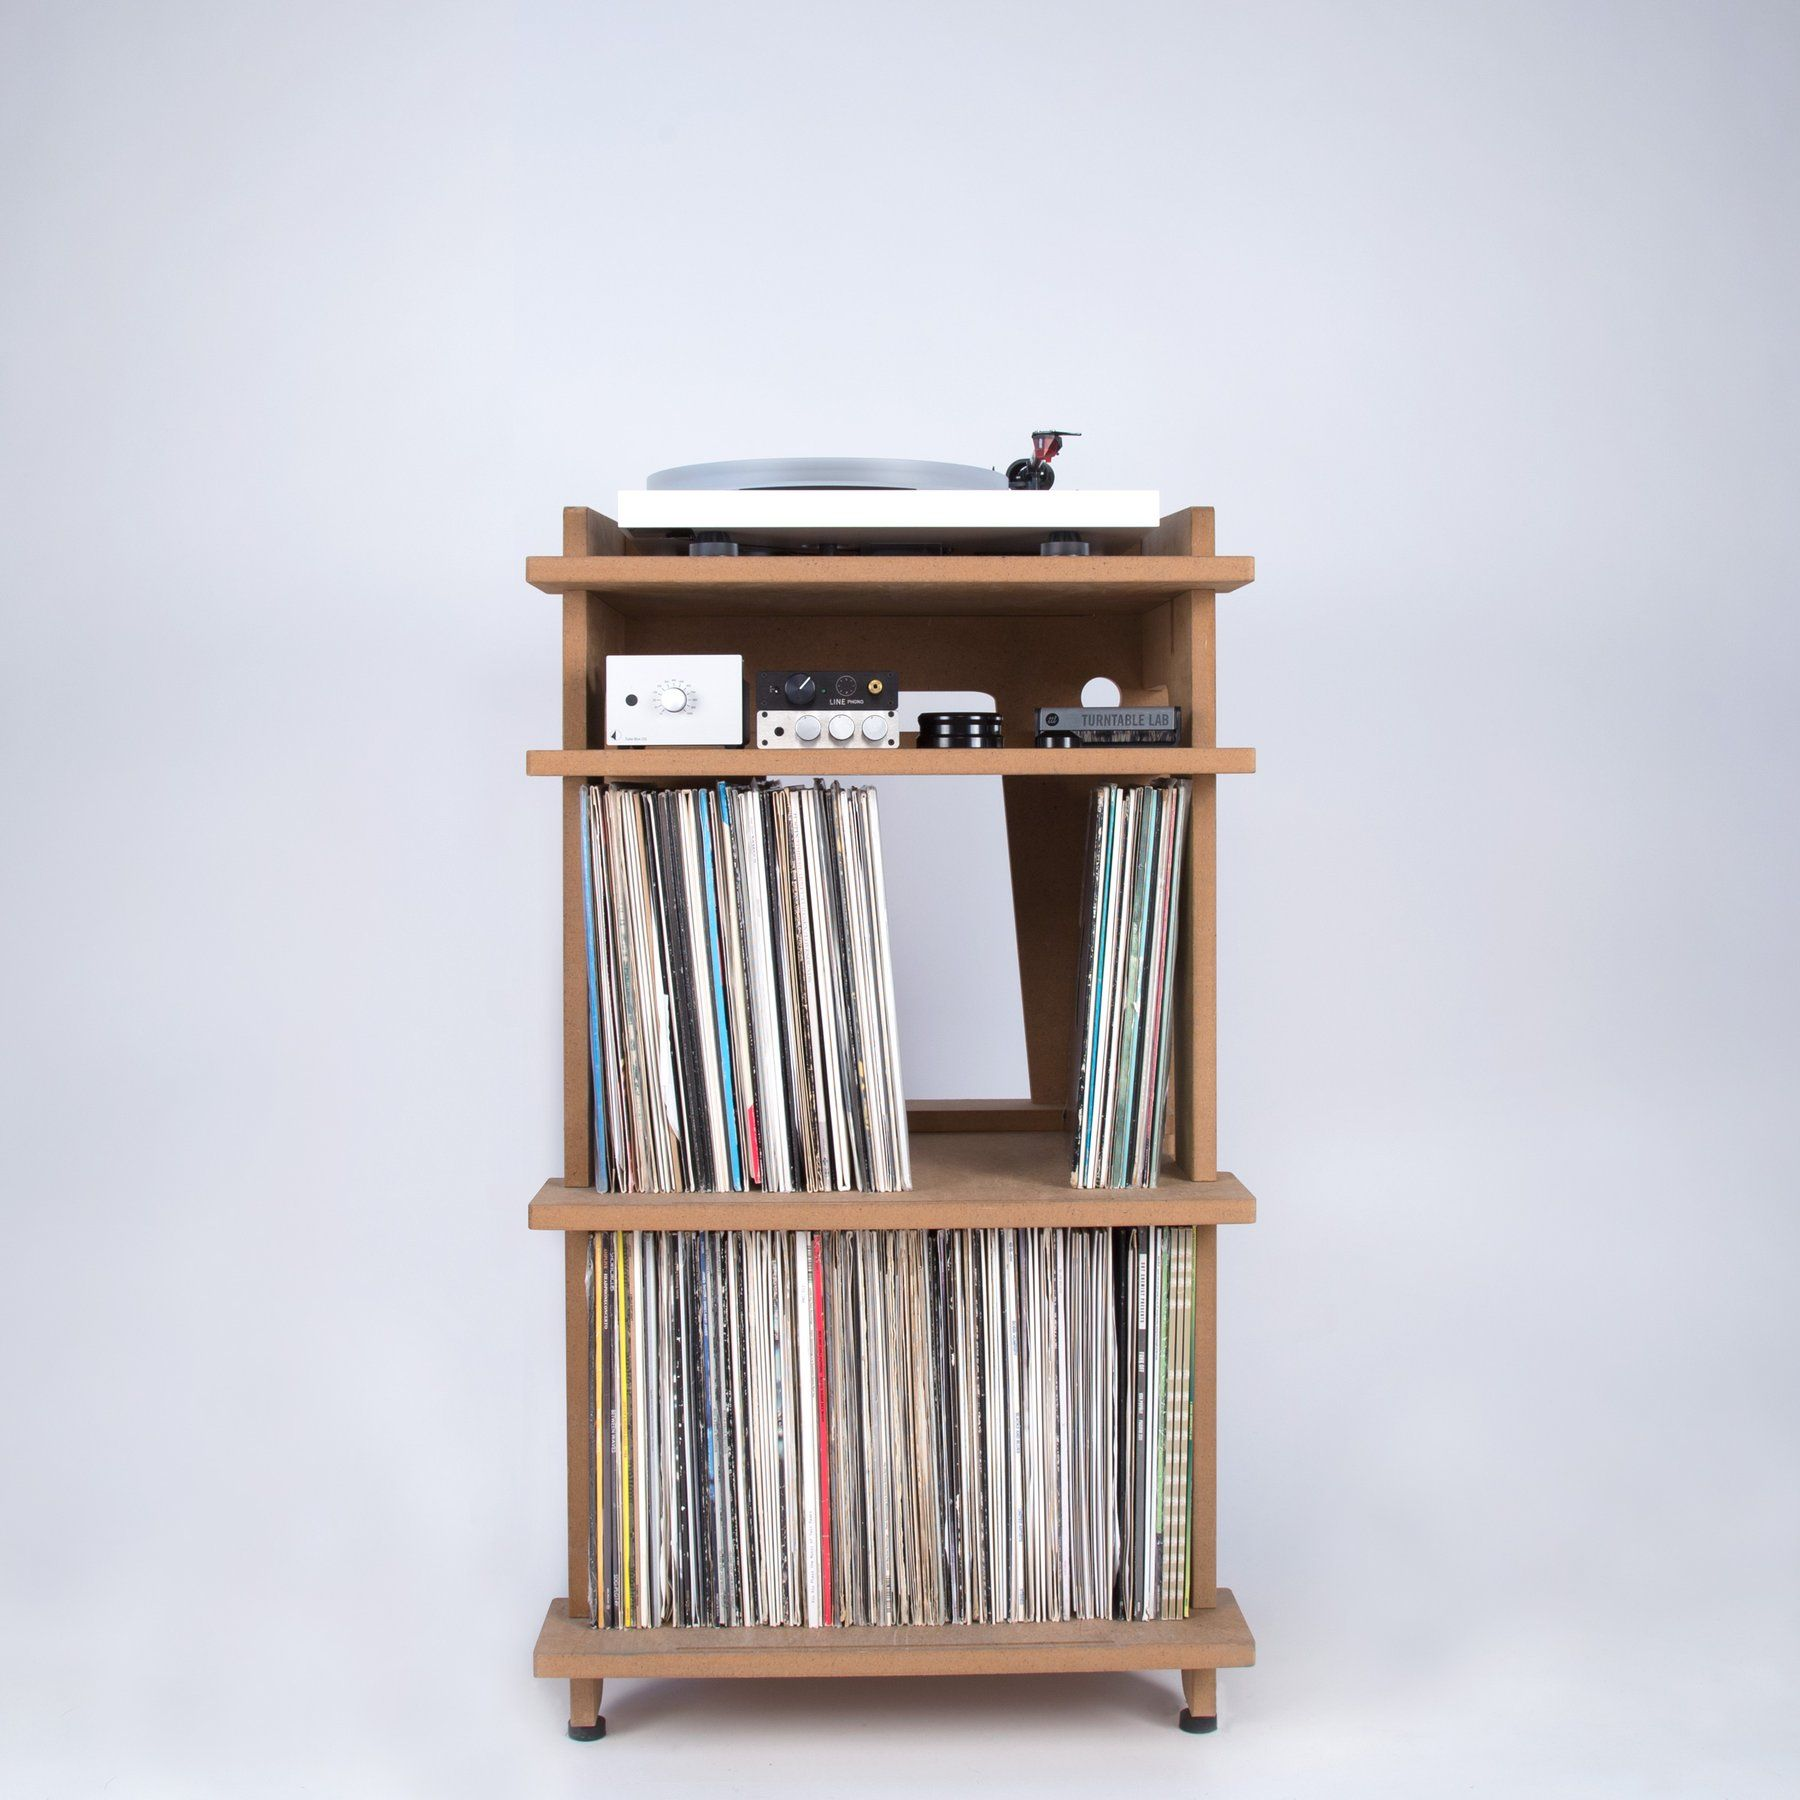 Line Phono Turntable Station Turntable Stand + Vinyl Record